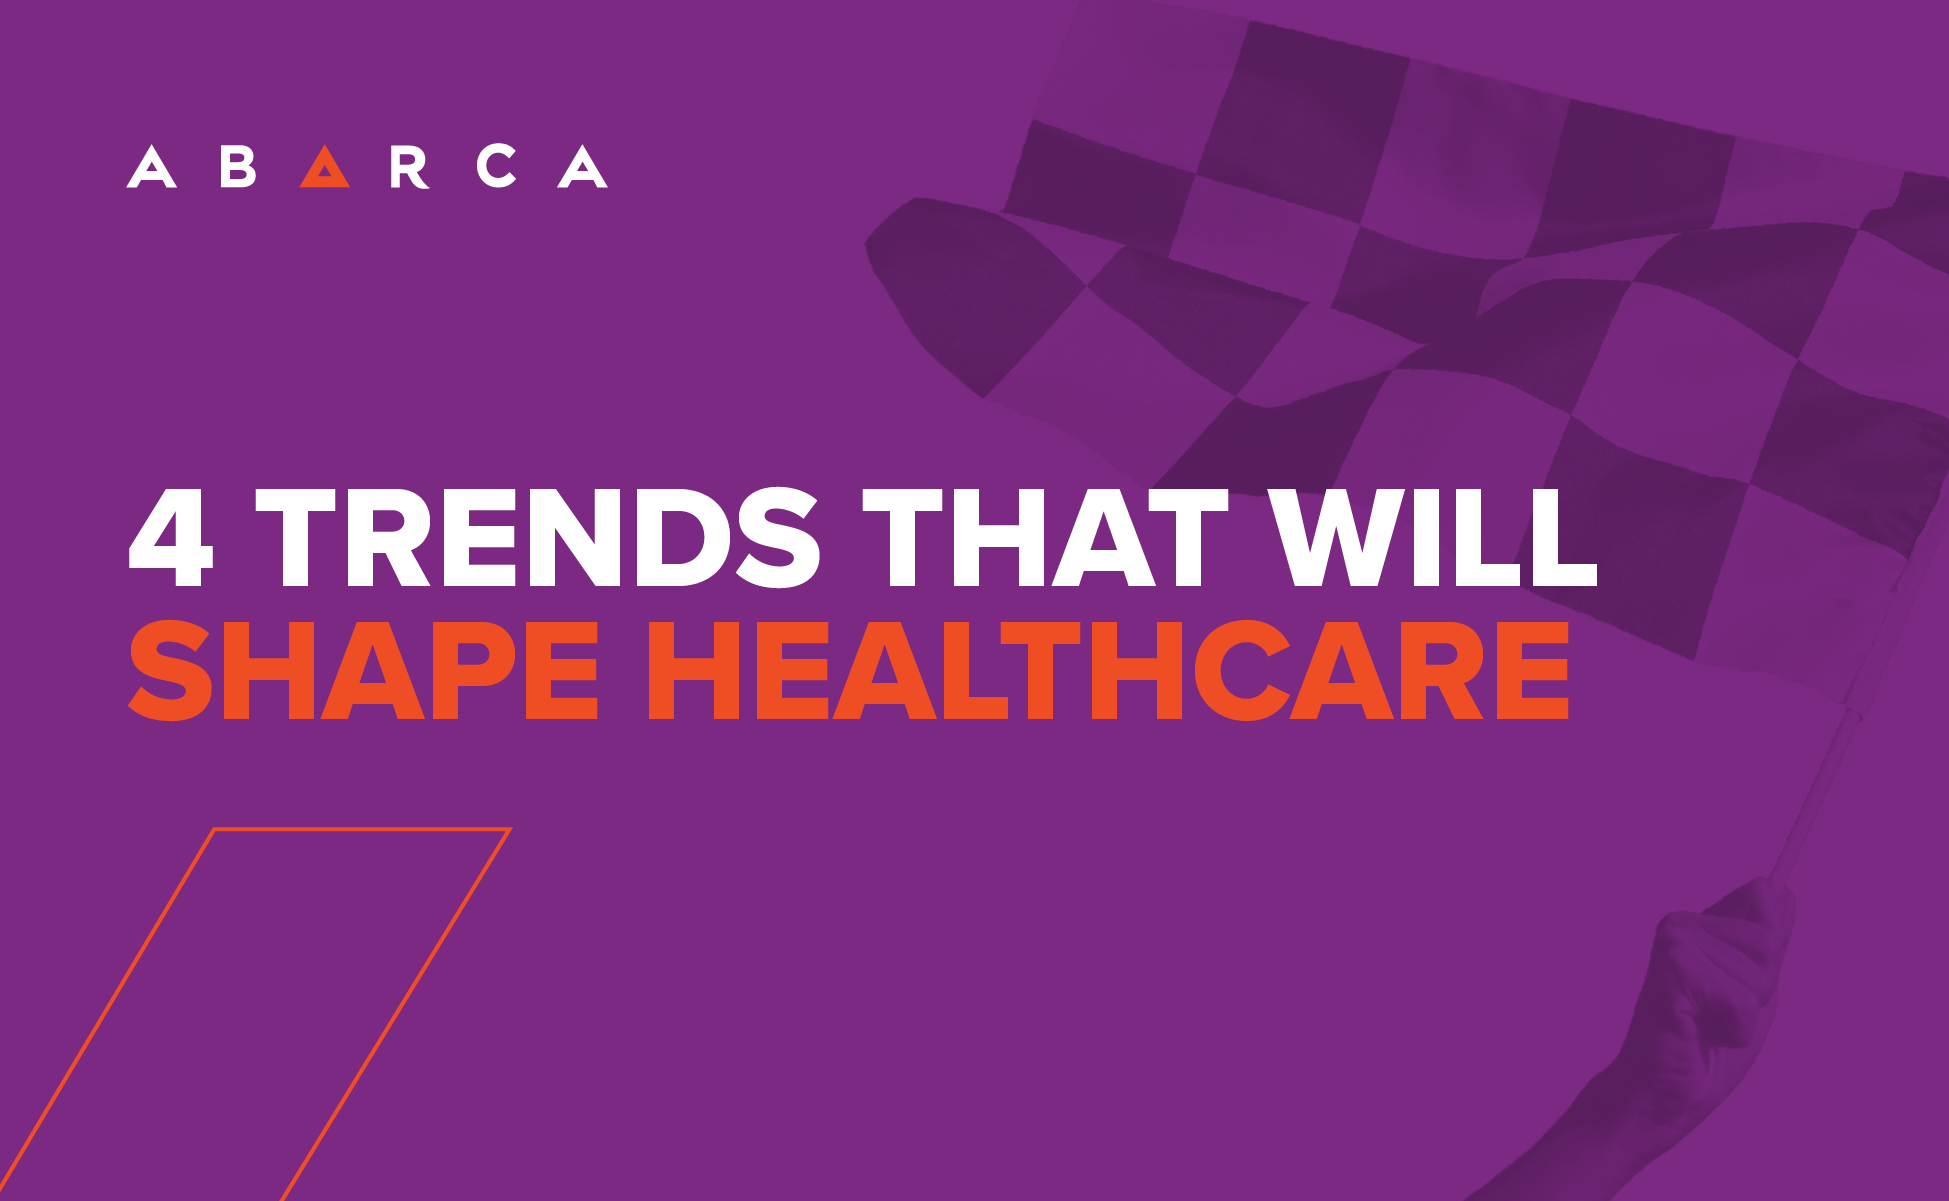 4 Trends That Will Shape Healthcare